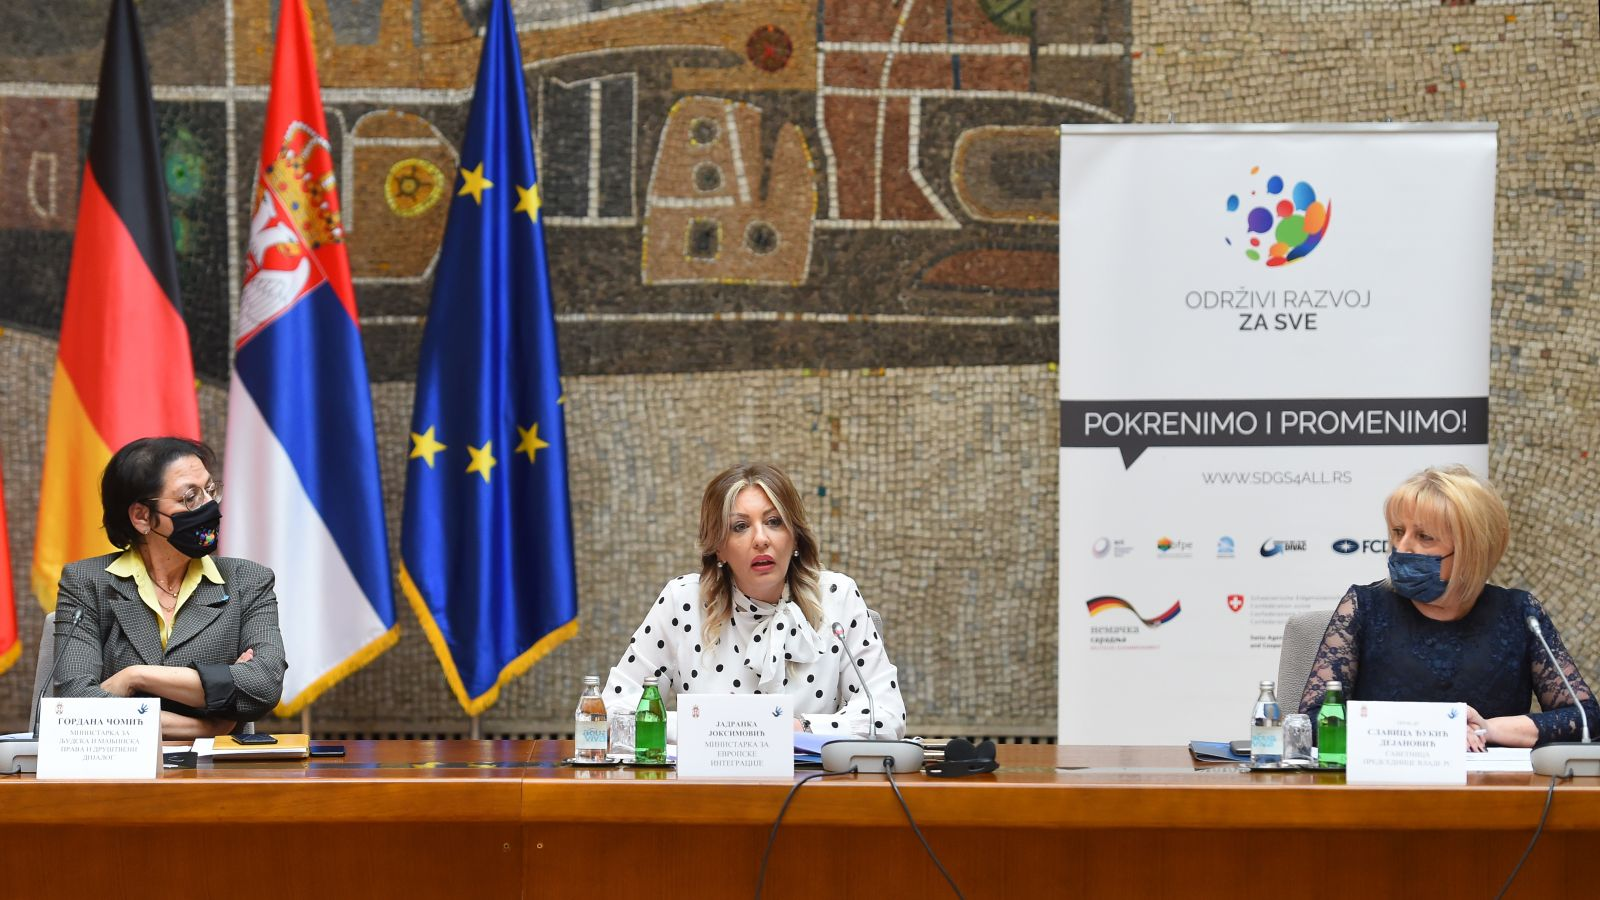 J. Joksimović: We are determined and committed to accelerating the meeting of criteria